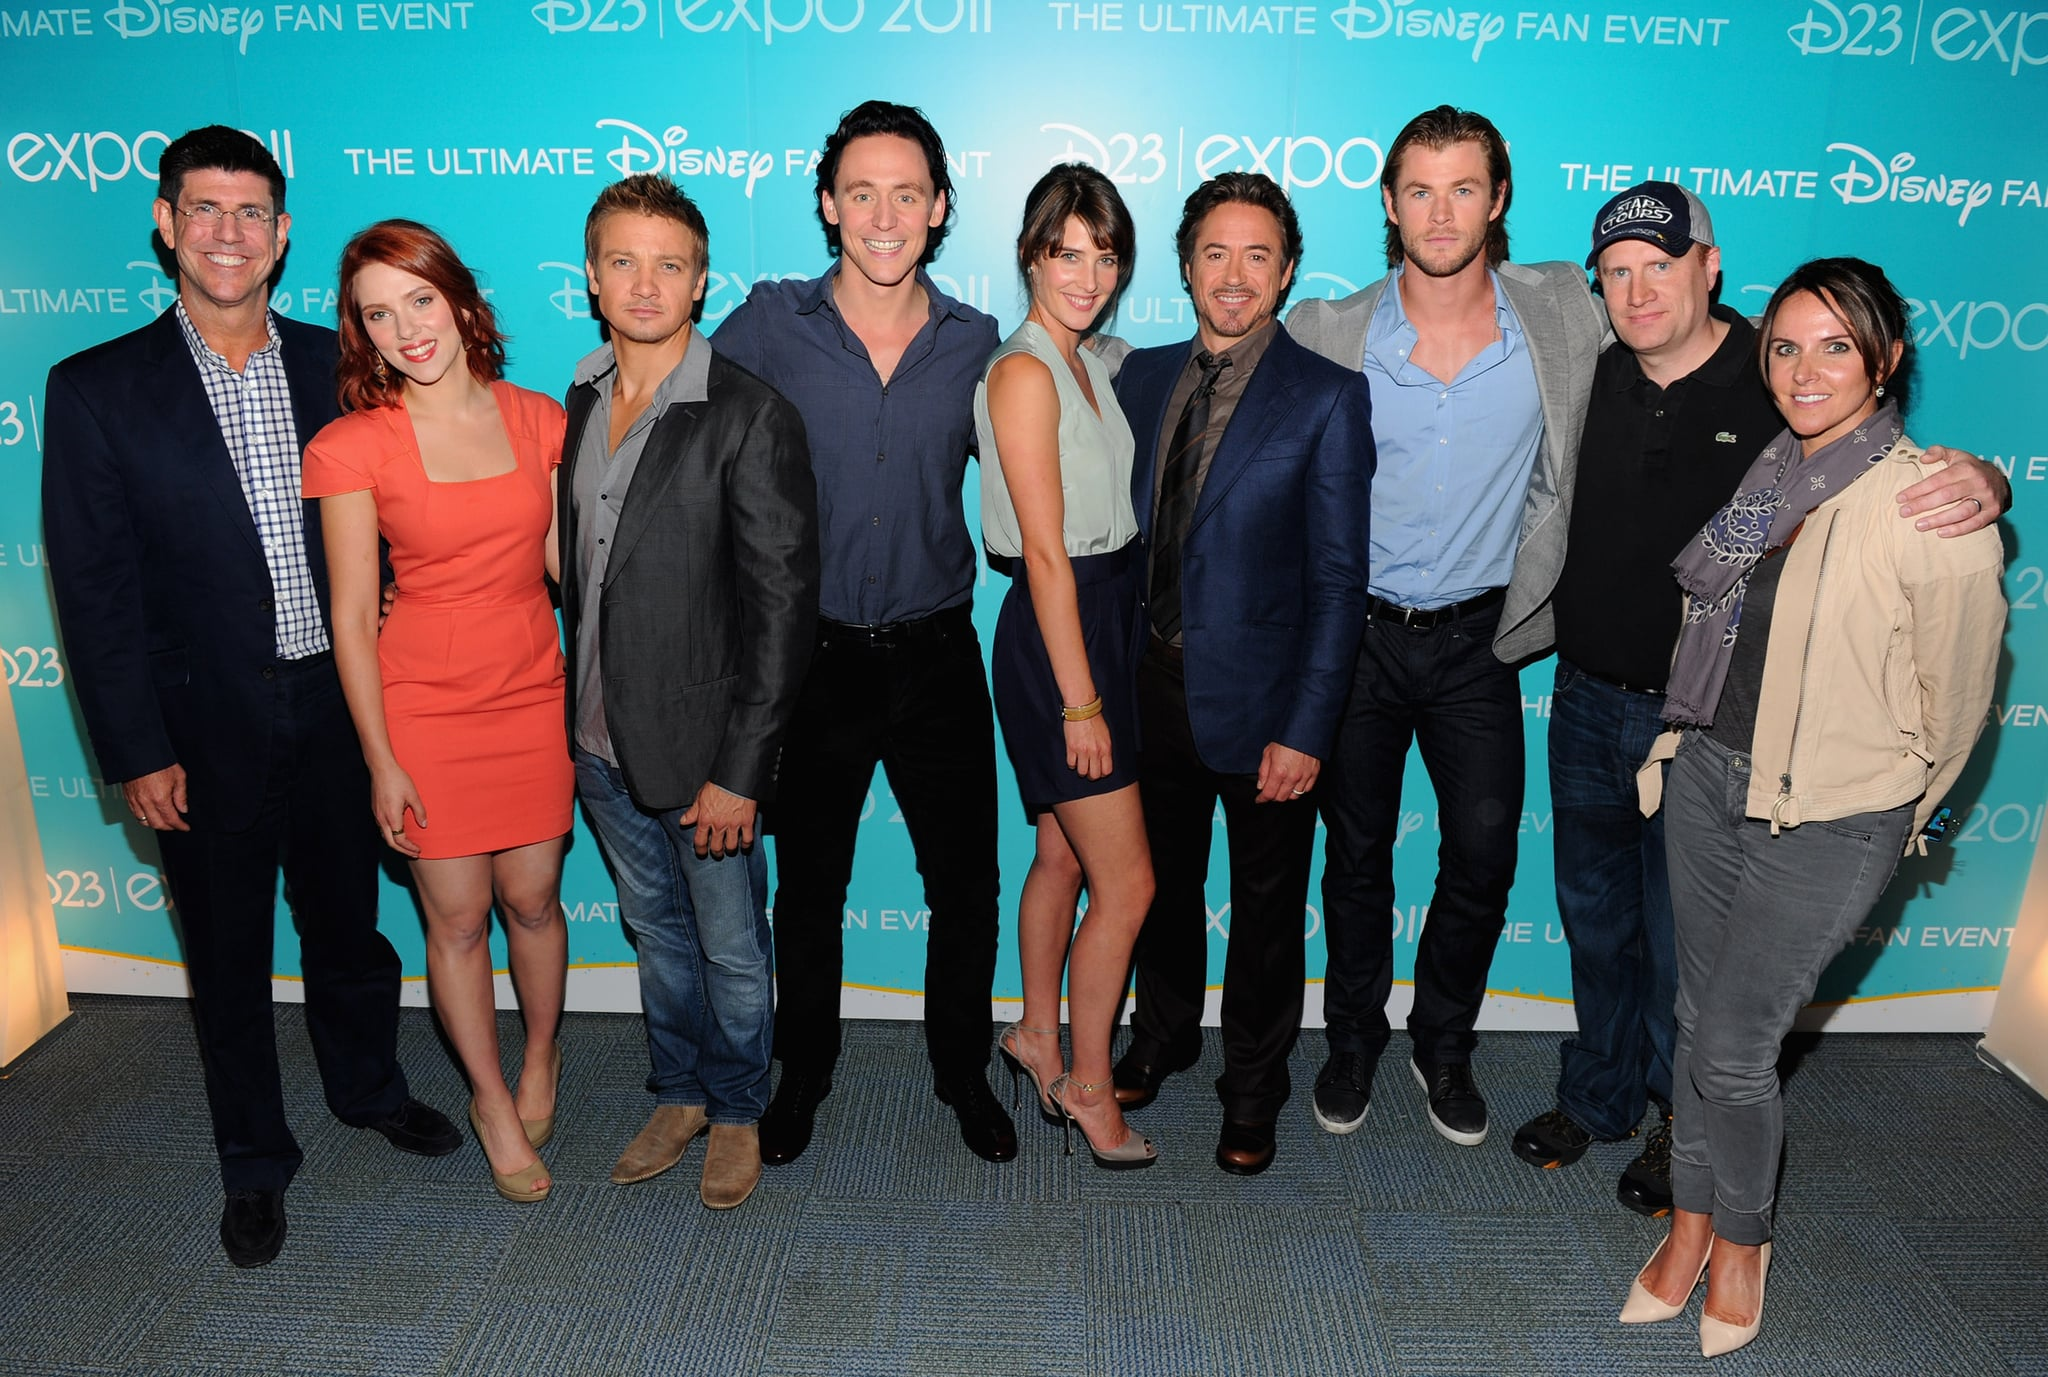 The Avengers cast, Disney execs, and producers struck a pose.